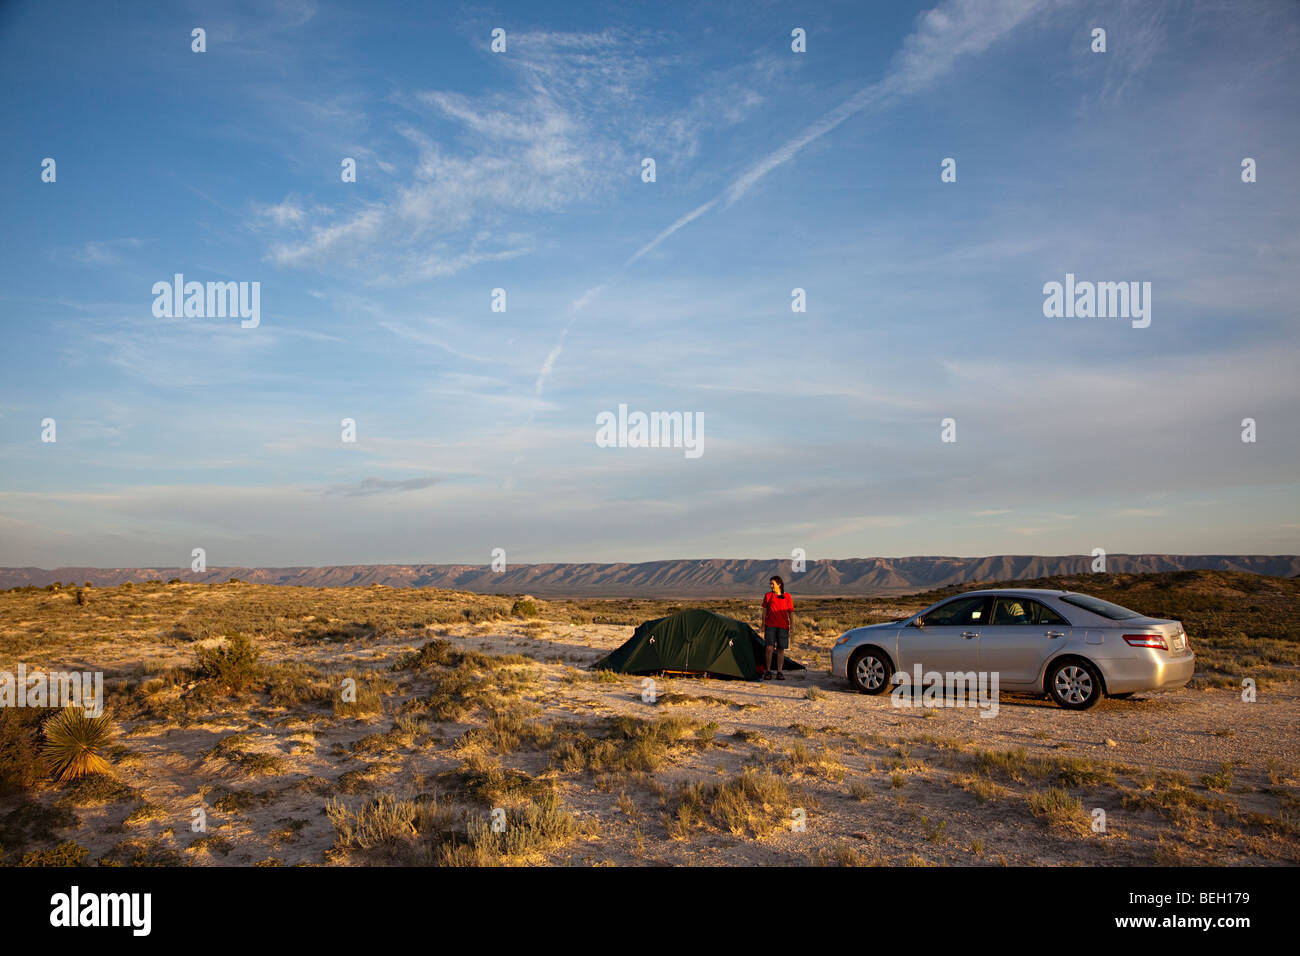 Woman with tent and car camping in desert on BLM land New Mexico USA - Stock Image